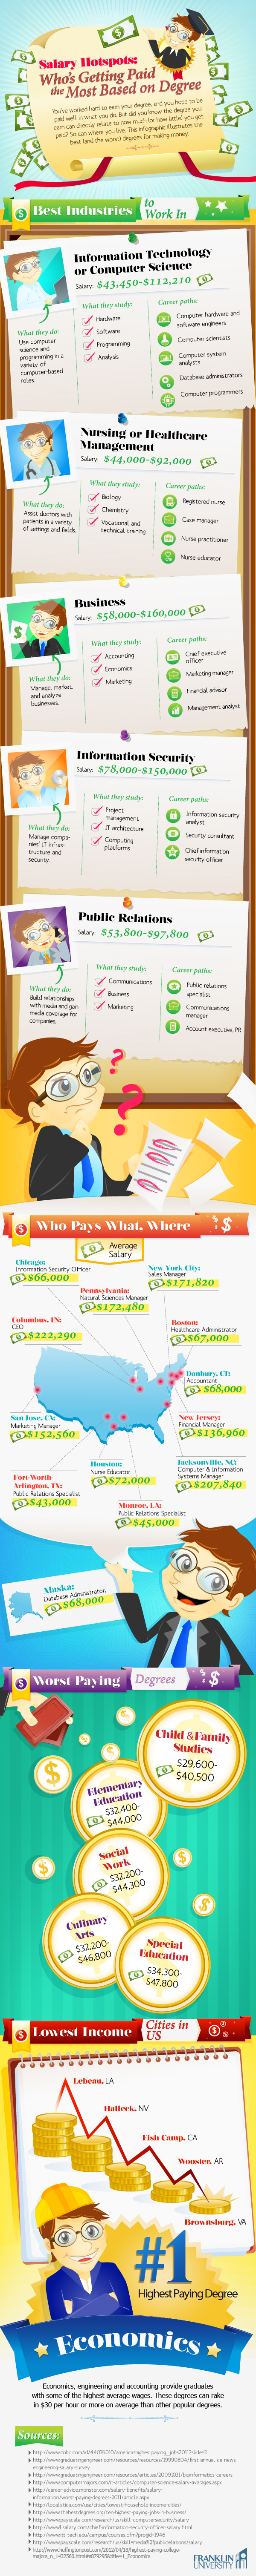 what-college-degrees-pay-the-most1